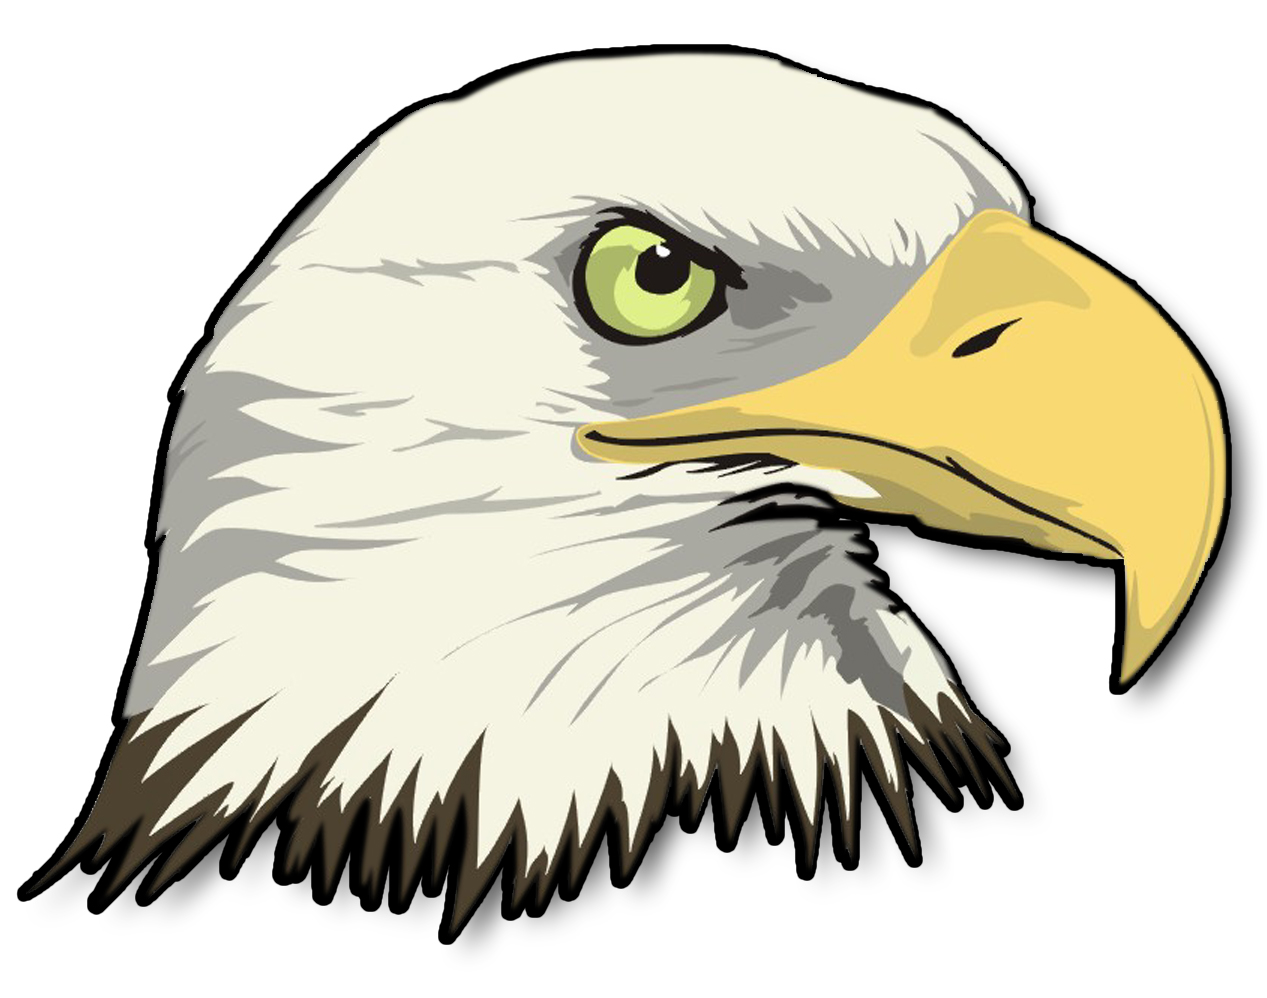 Bald eagle clipart logo png - ClipartFest banner free library